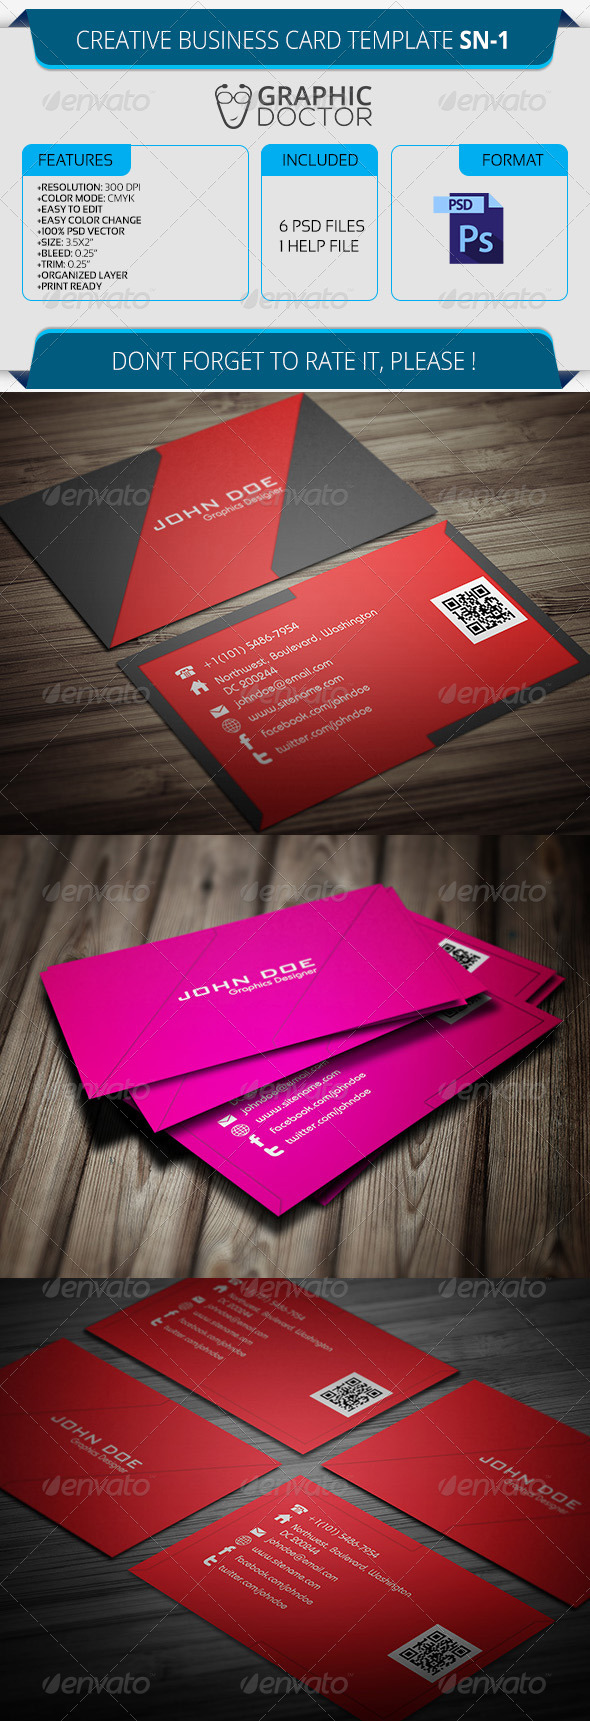 Creative Business Card Template SN-1